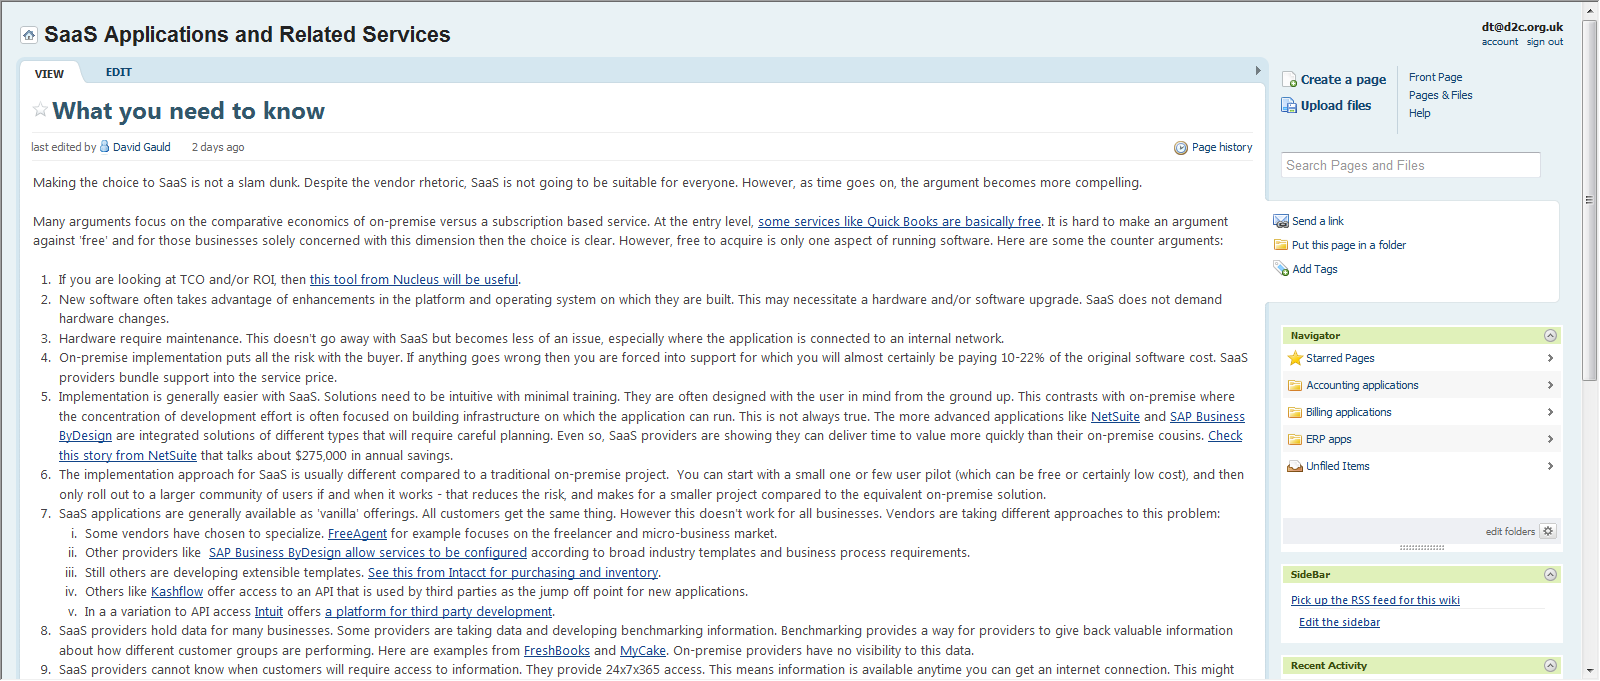 The SaaS applications wiki - open for business